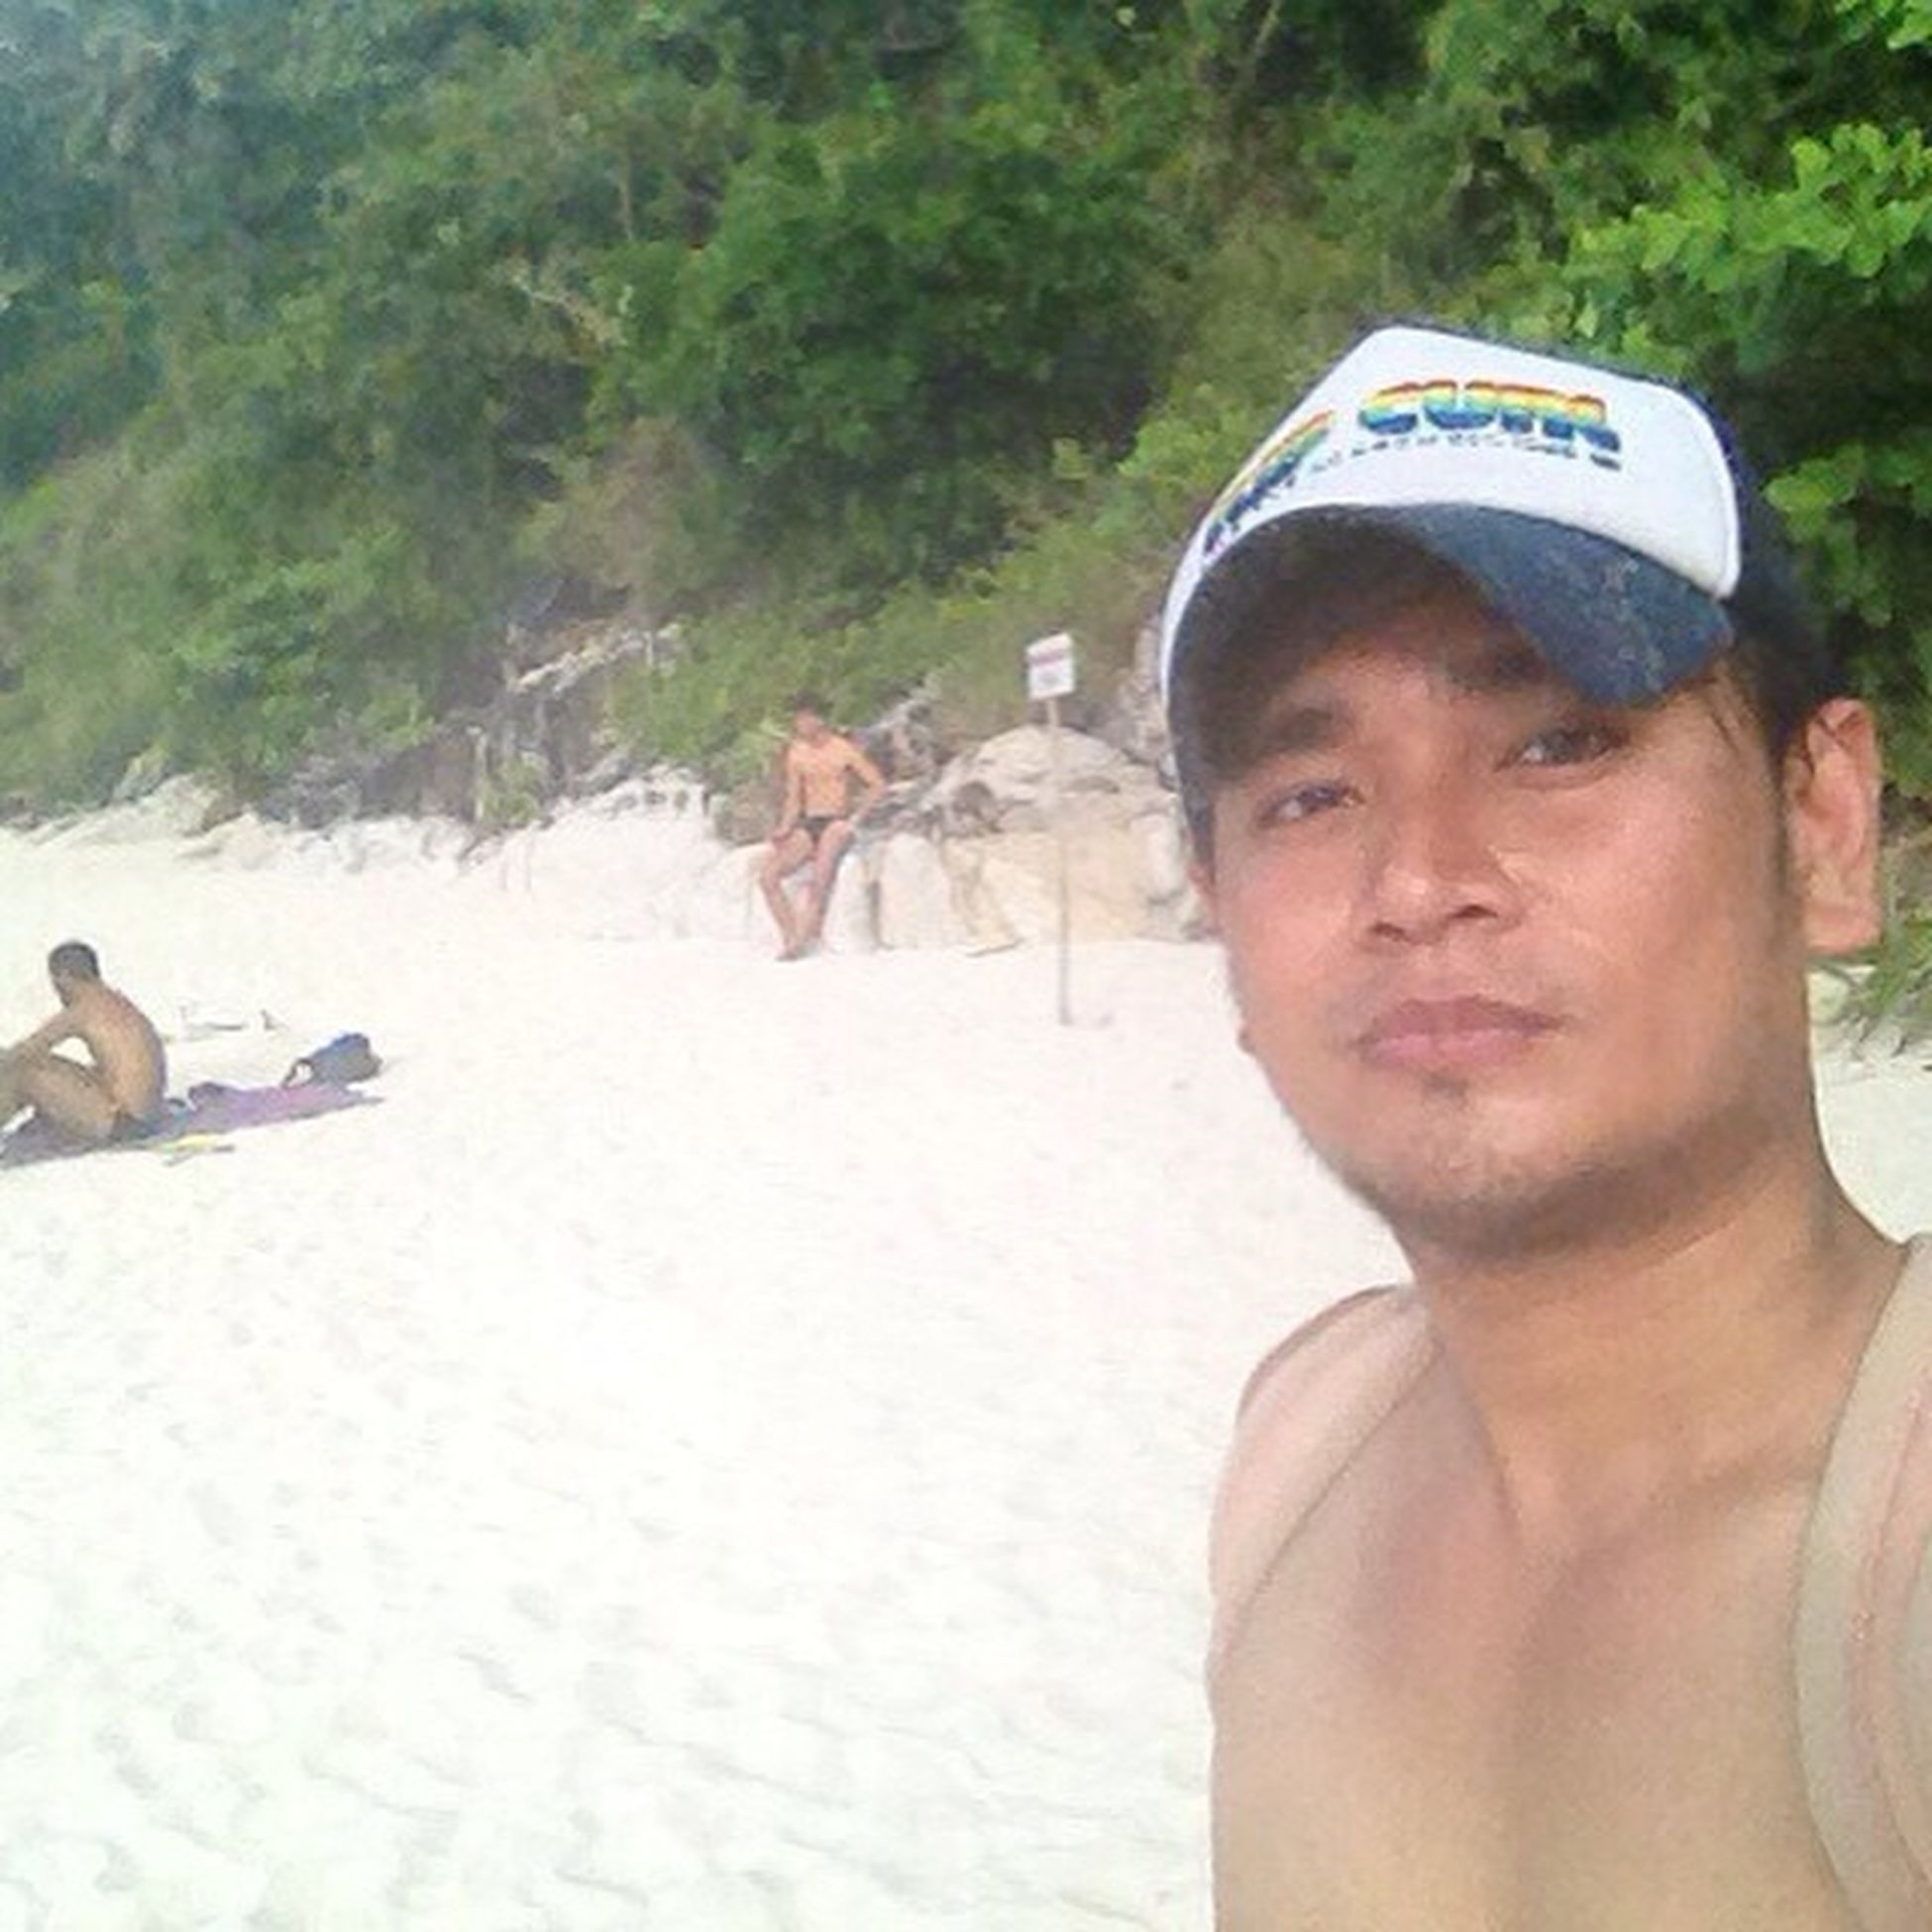 Afternoon at Freedombeach ...